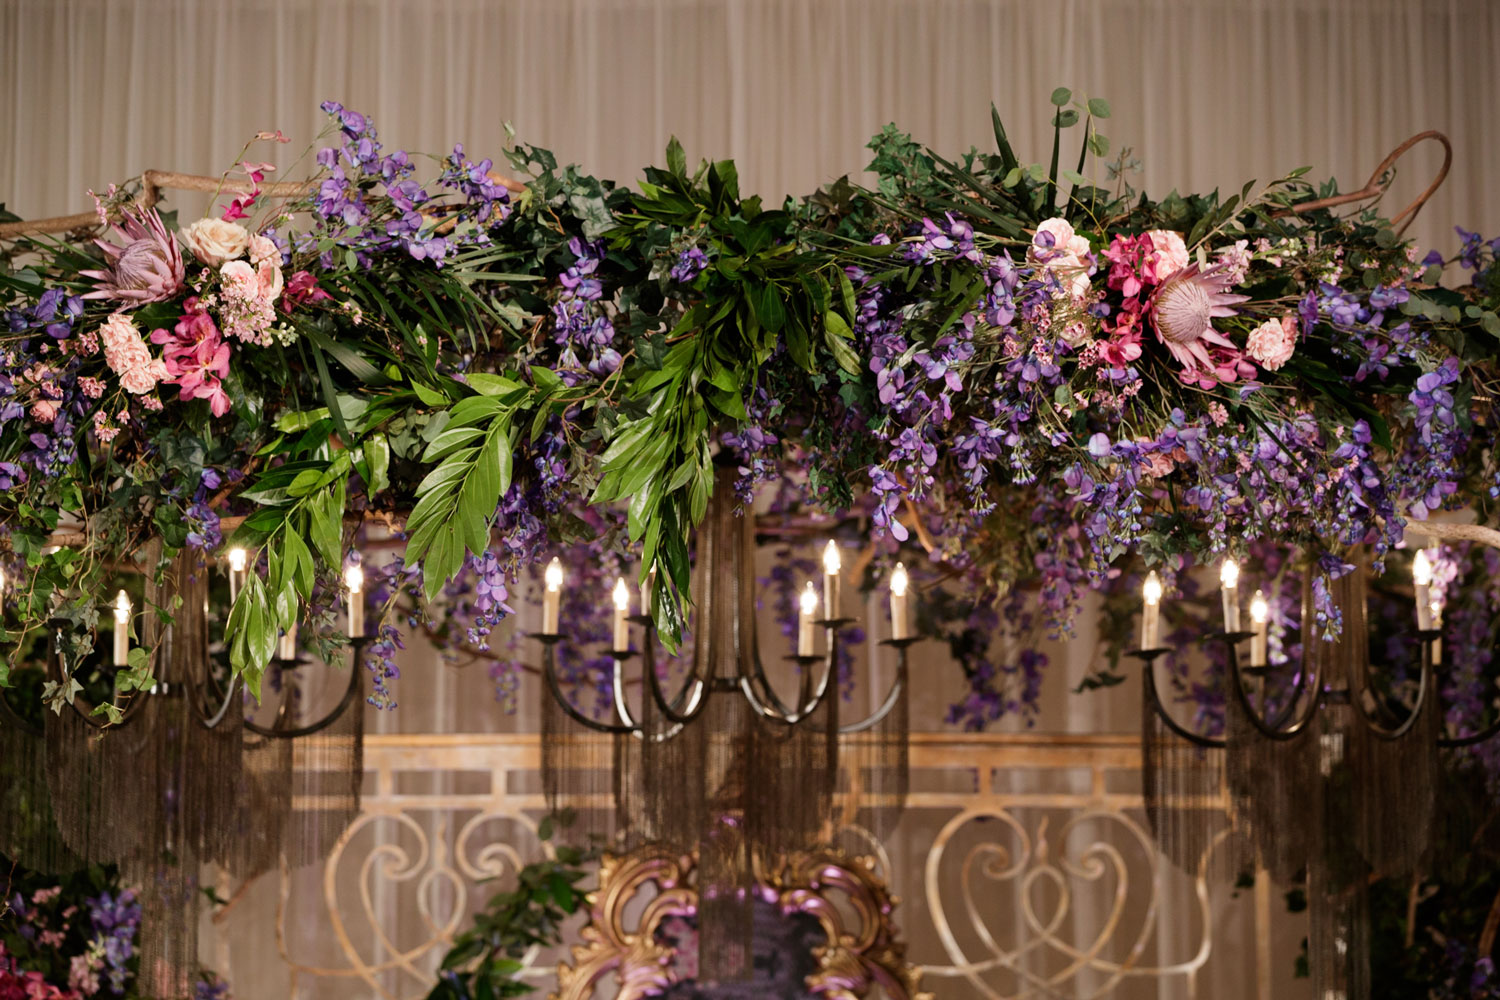 Inspired Wedding styled shoot A Romantic Affair Bob & Dawn Davis Photography flowers ceremony arch purple